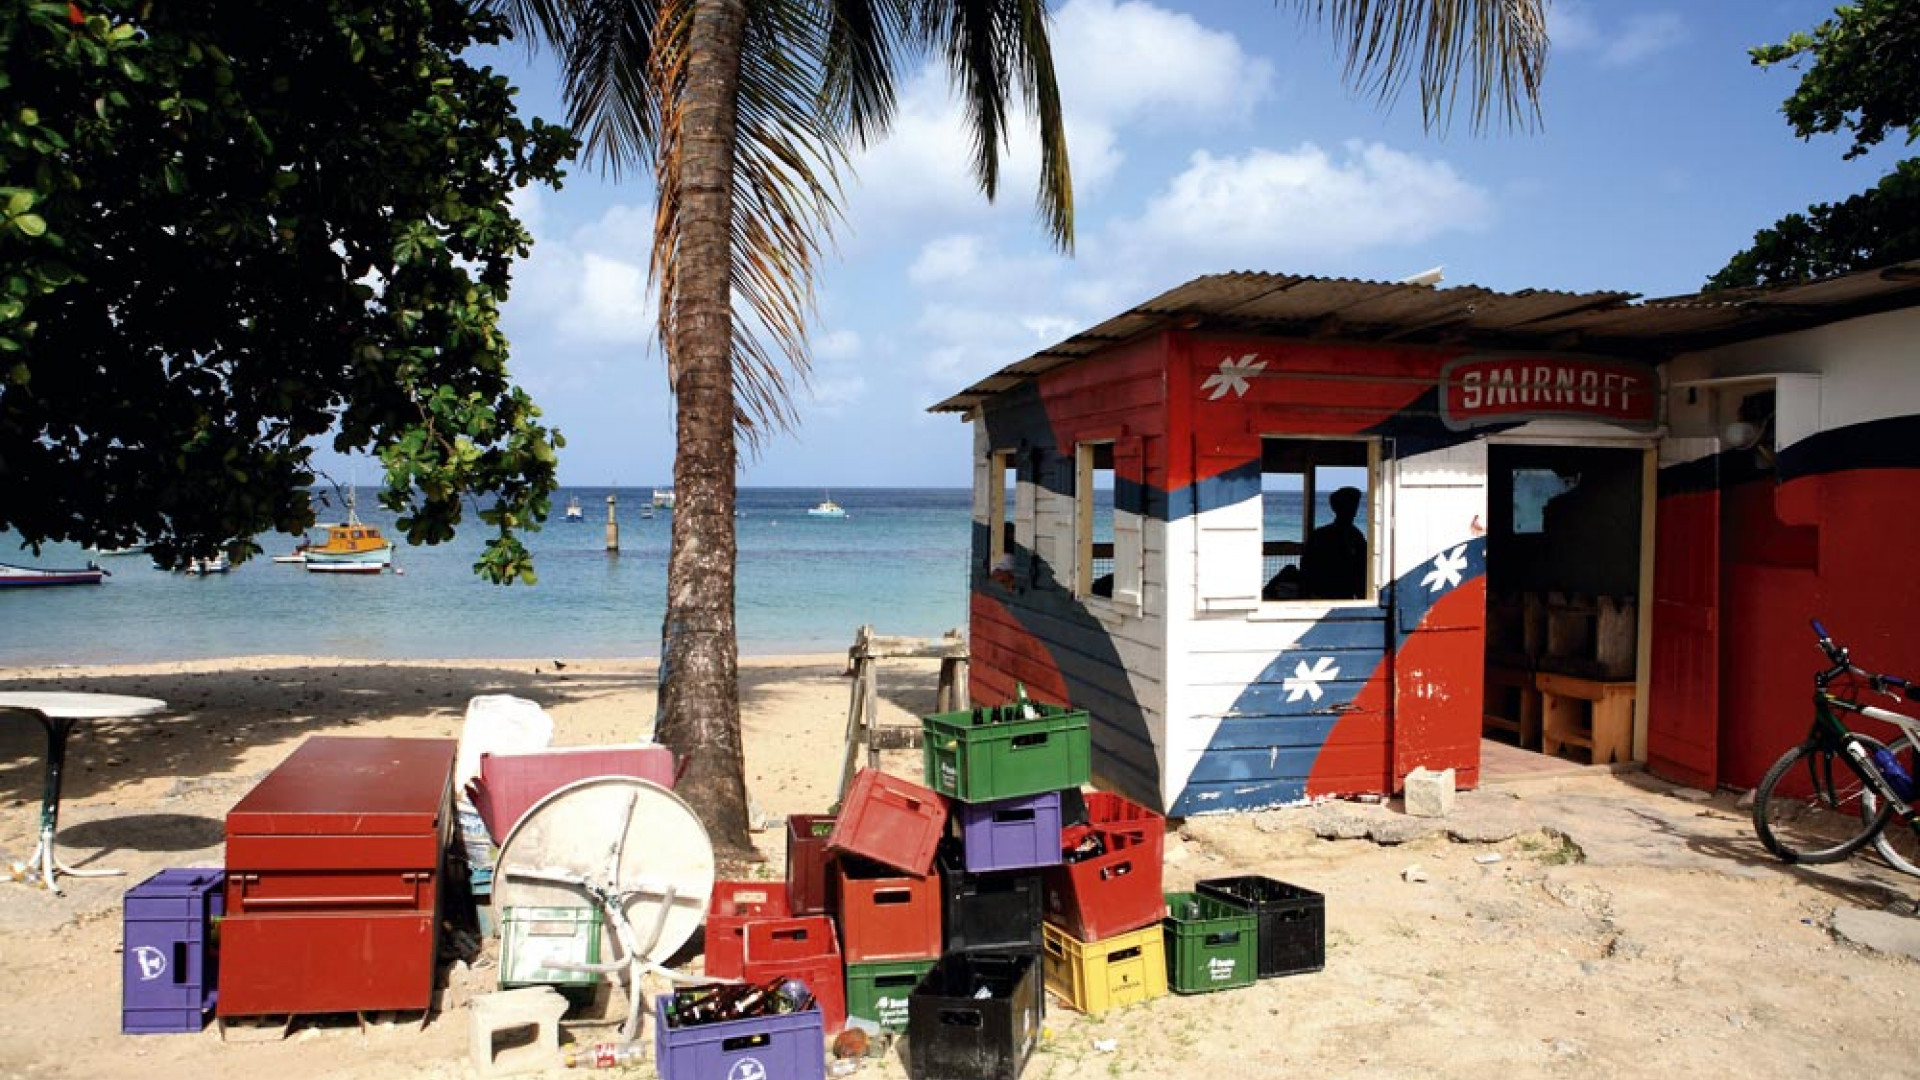 Rum shack in Barbados